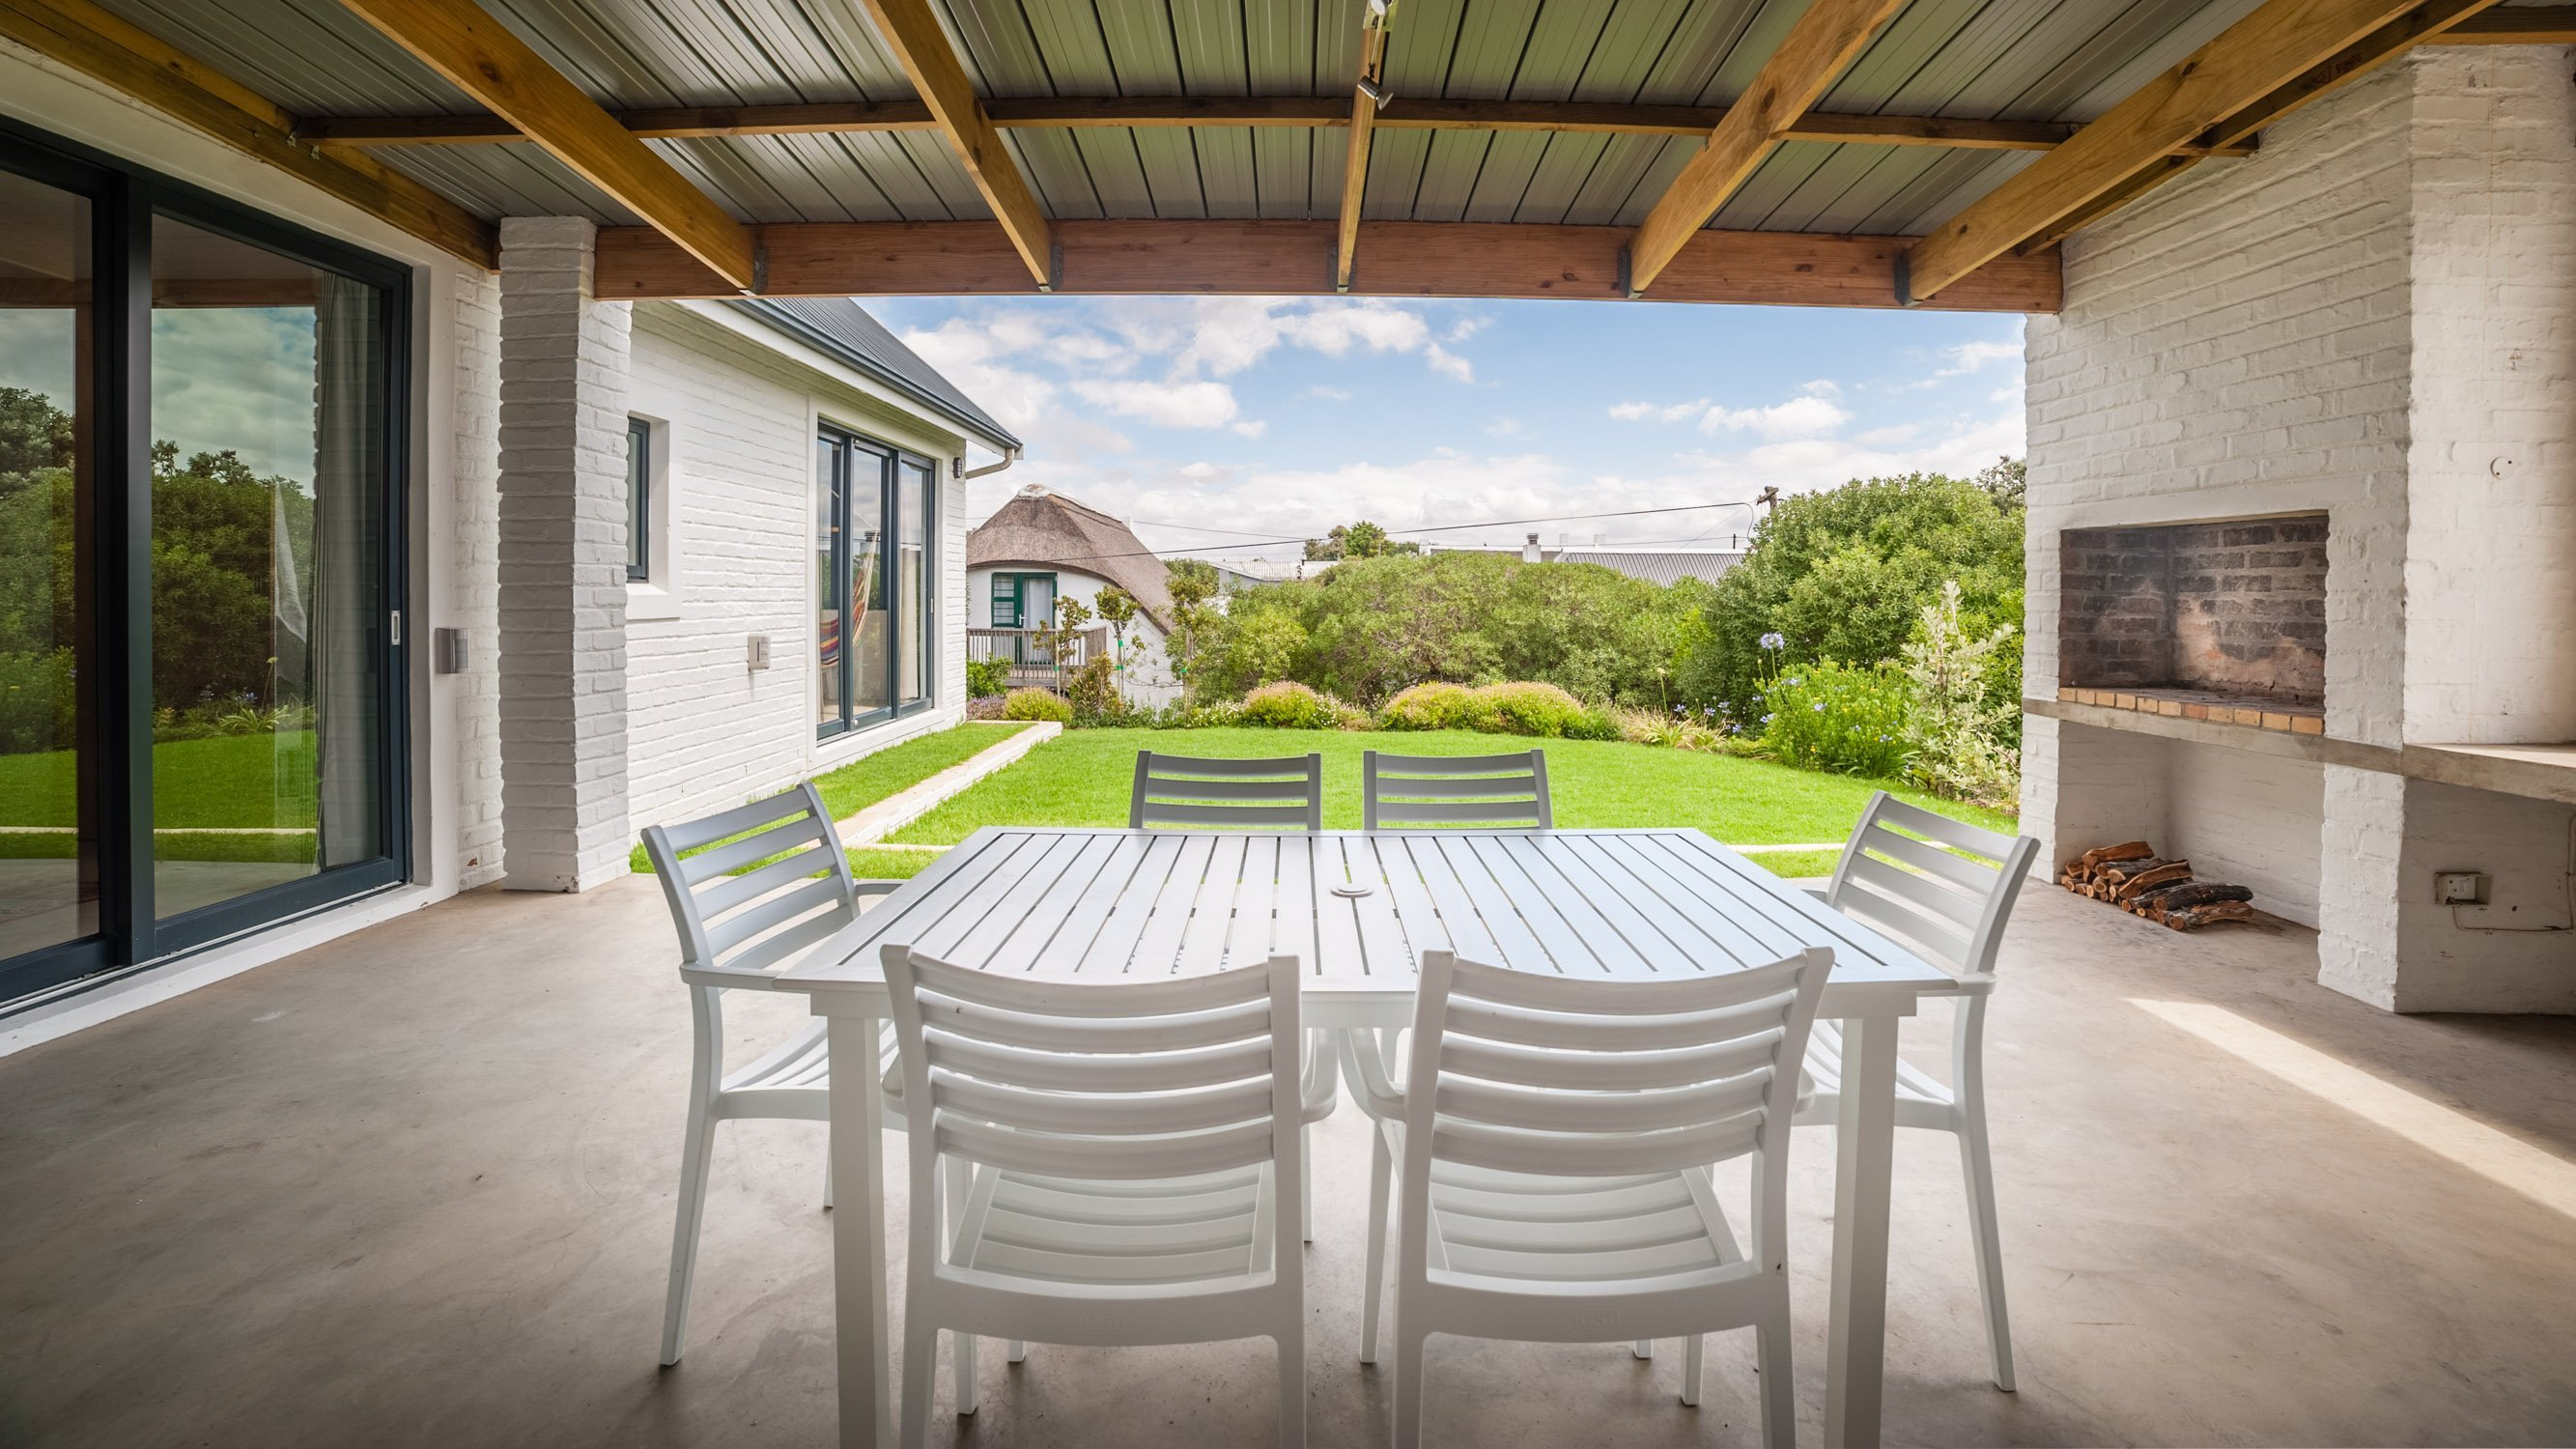 charel-schreuder-photography-property-photography-rear-patio-braai-garden-area